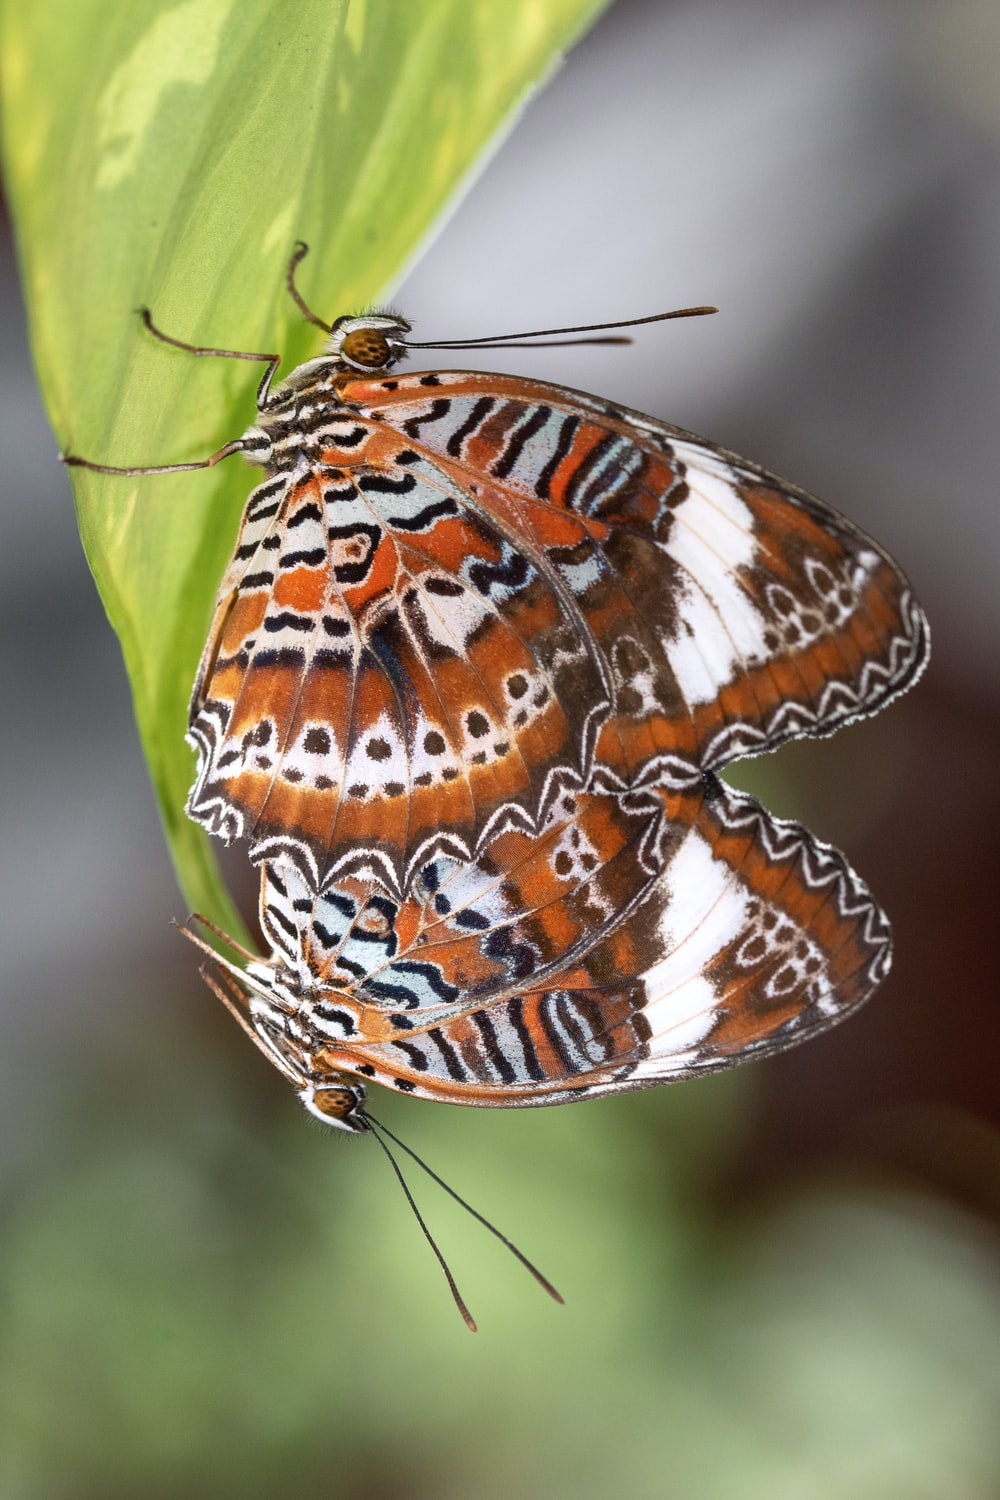 brown and white butterfly perched on green leaf in close up photography during daytime